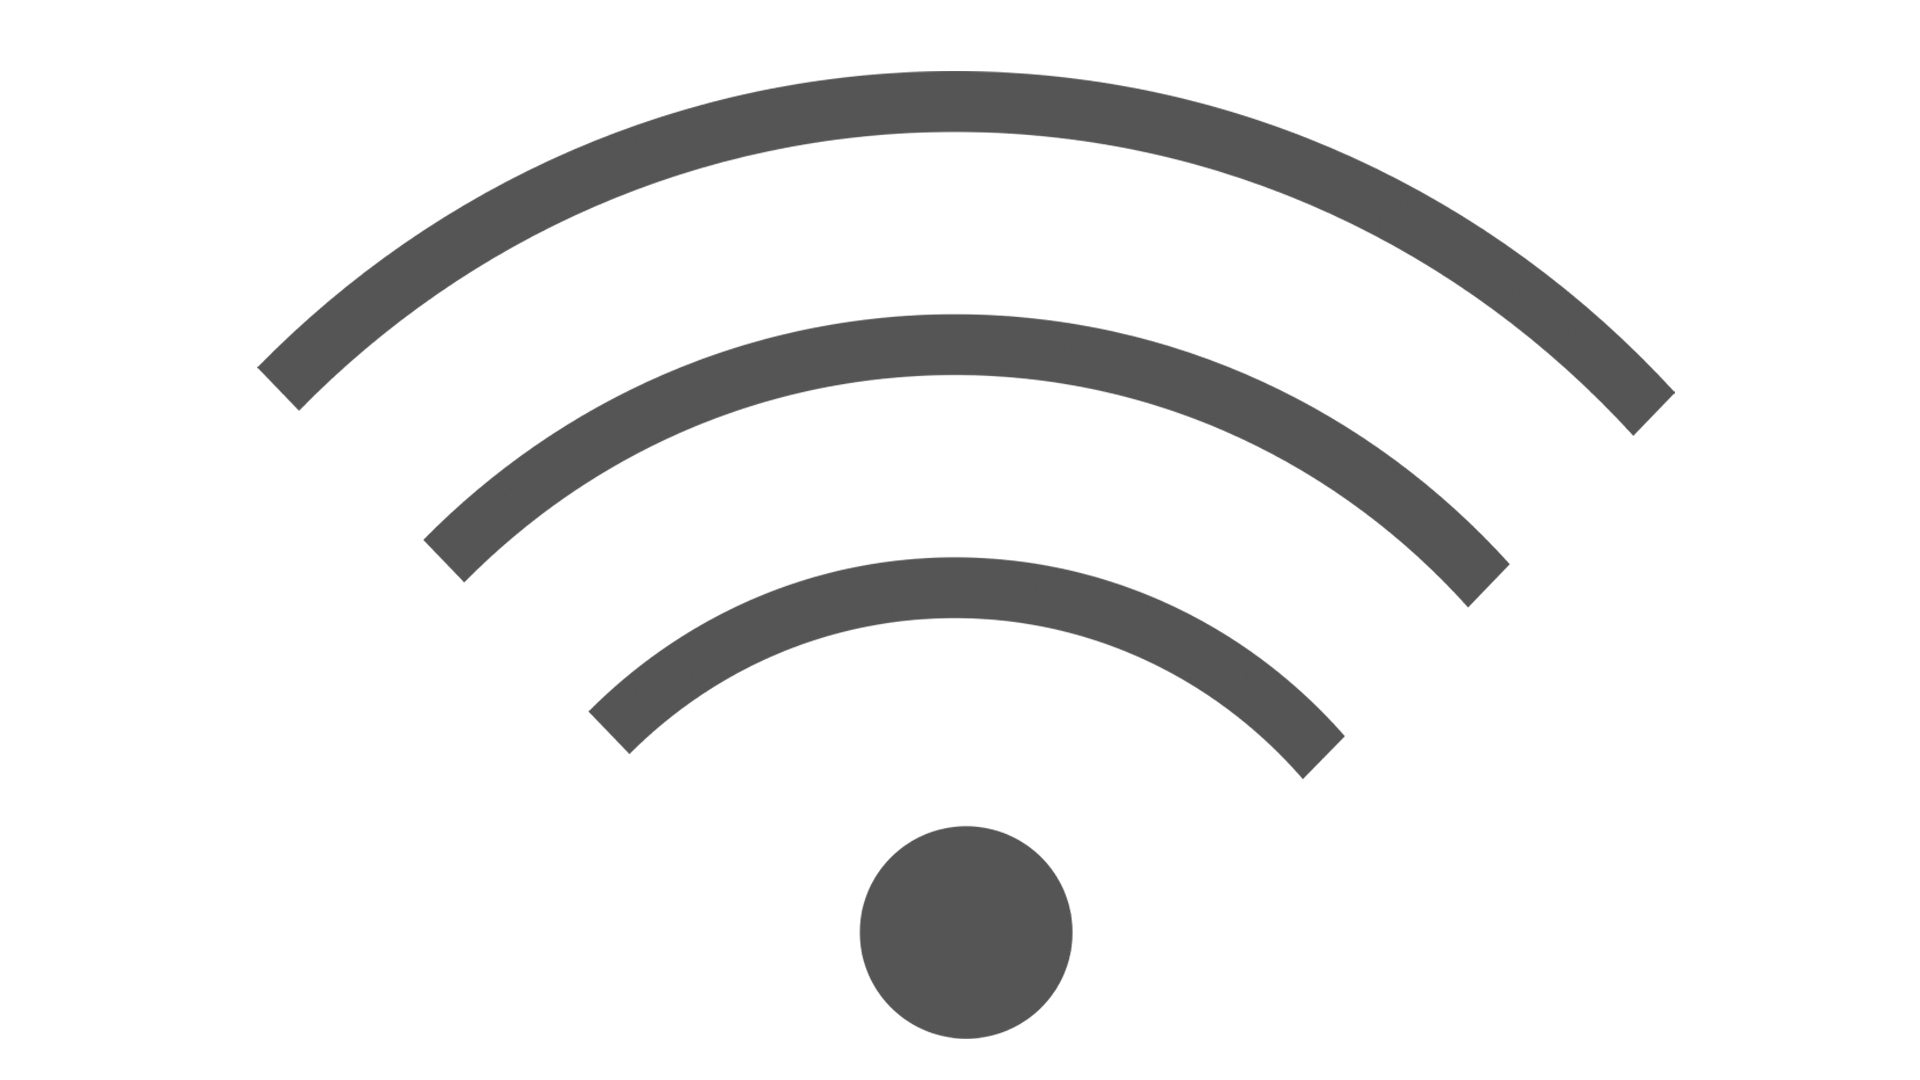 Desarrolladores de la Universidad de Washington crearon un dispositivo capaz de transformar ondas de Bluetooth en WiFi